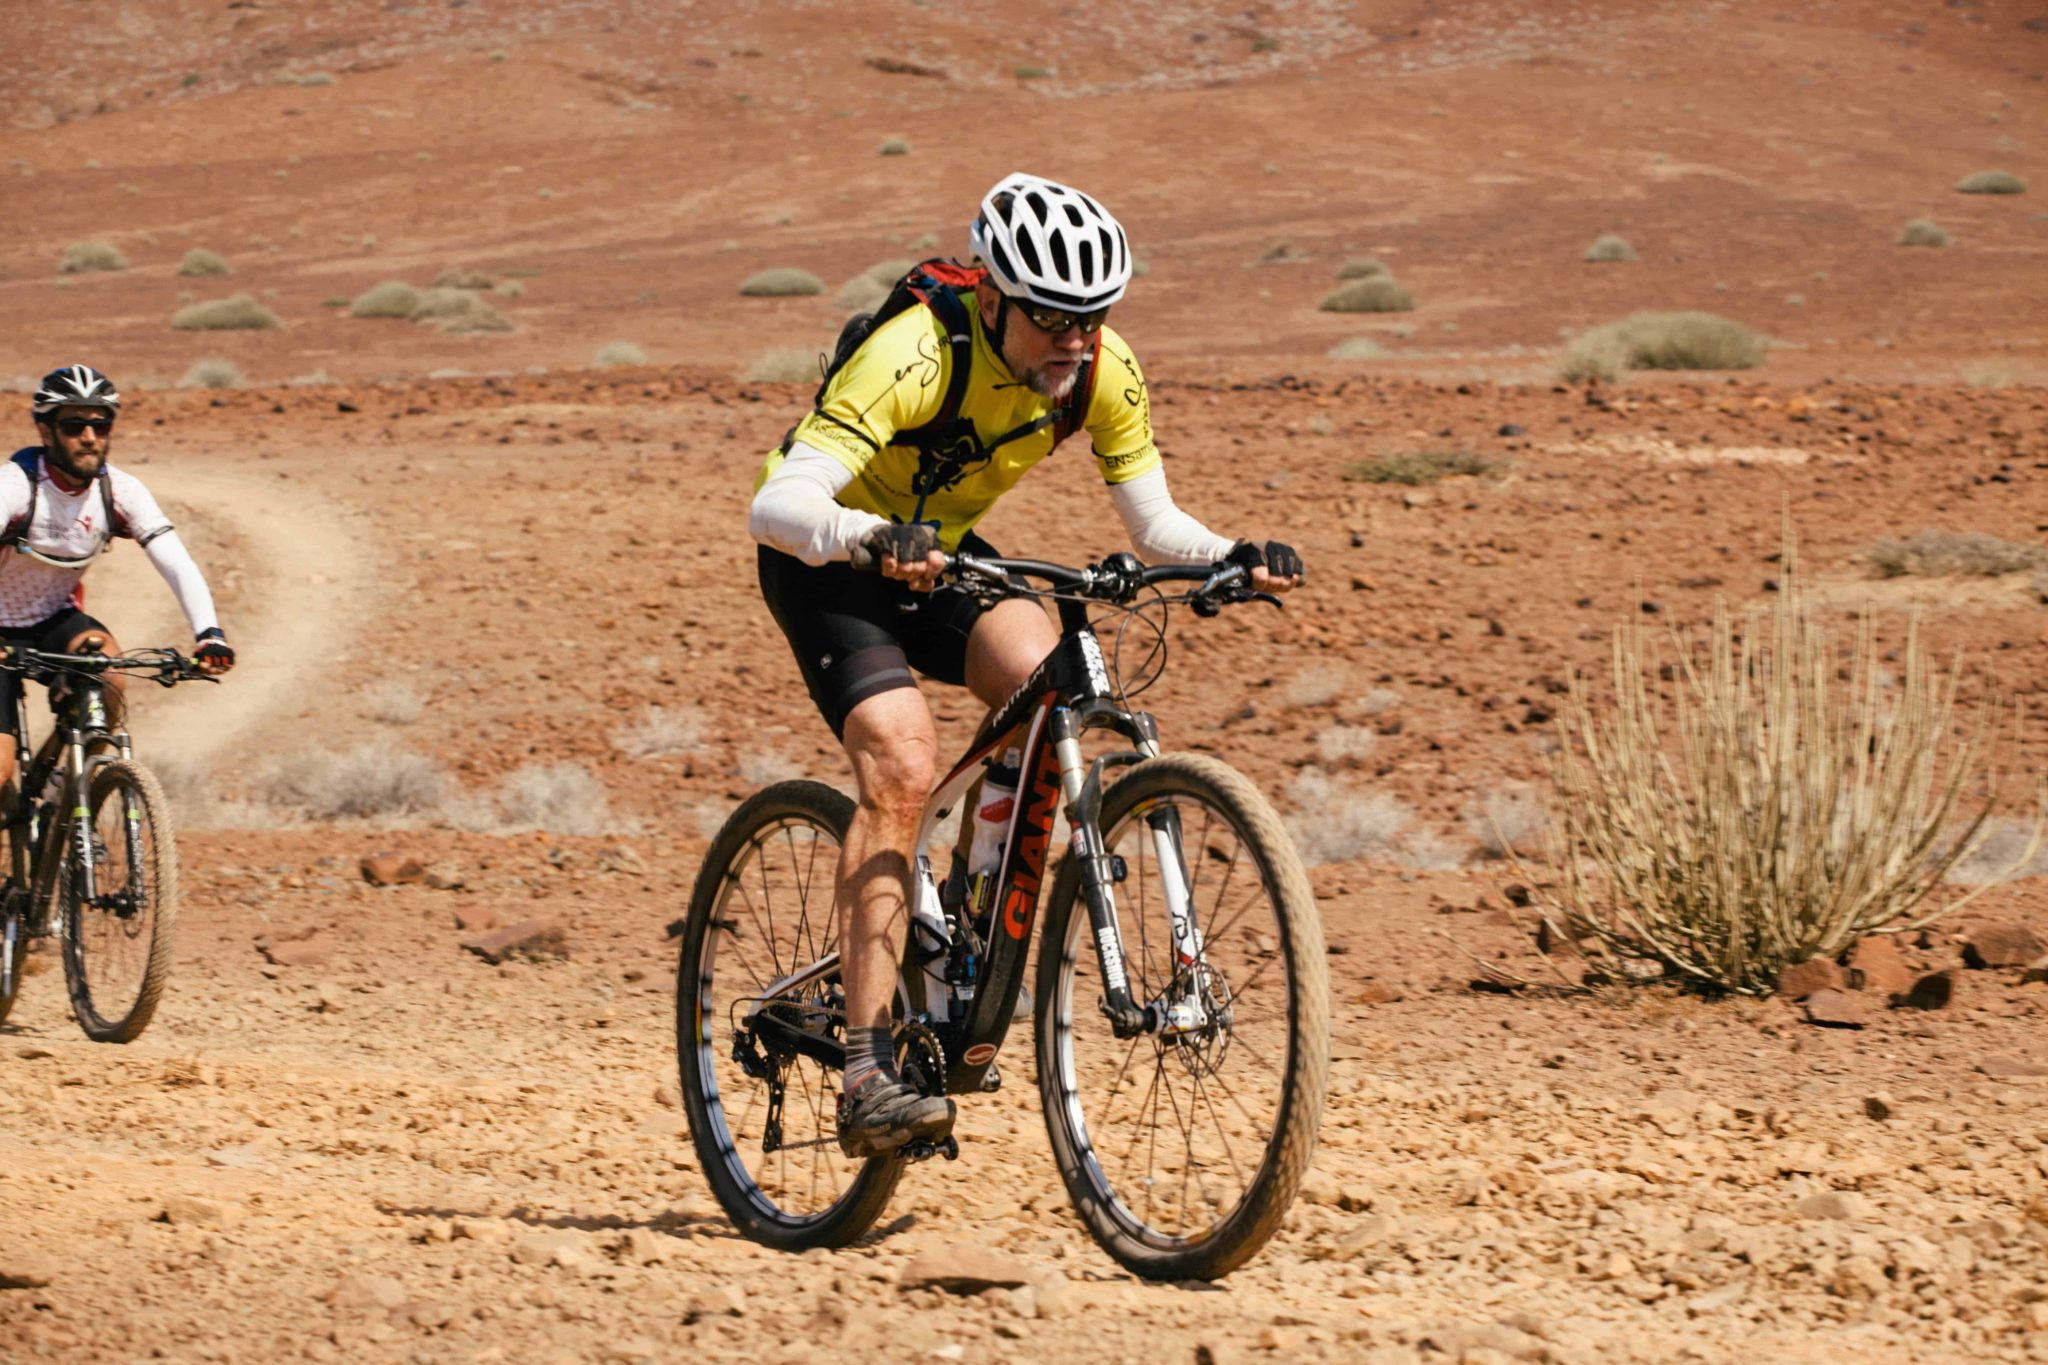 RMB Namibia Ride for Rhinos in Damaraland | African Safari with Taga